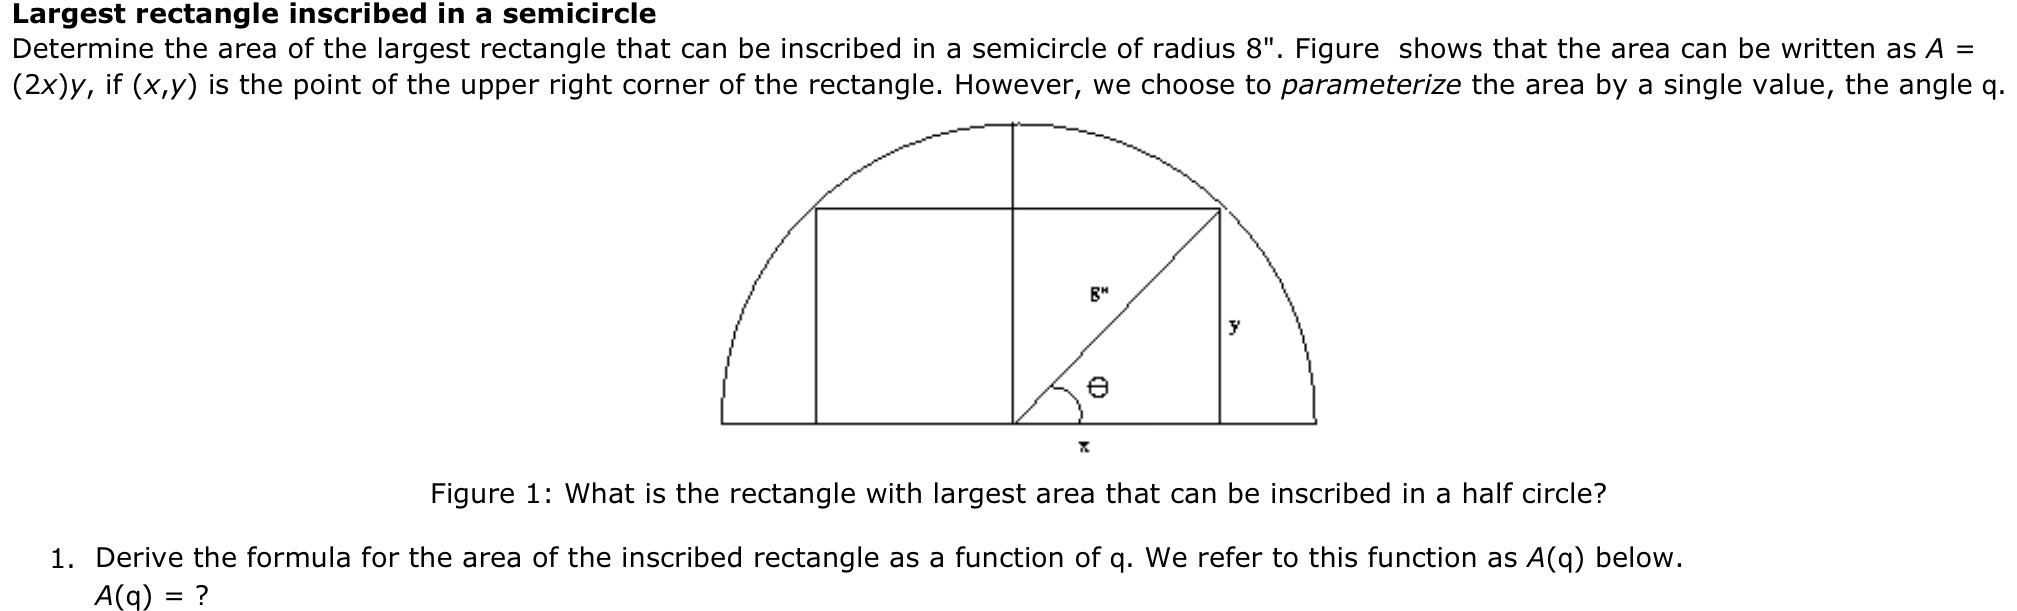 Image For Largest Rectangle Inscribed In A Semicircle Determine The Area Of  The Largest Rectangle That